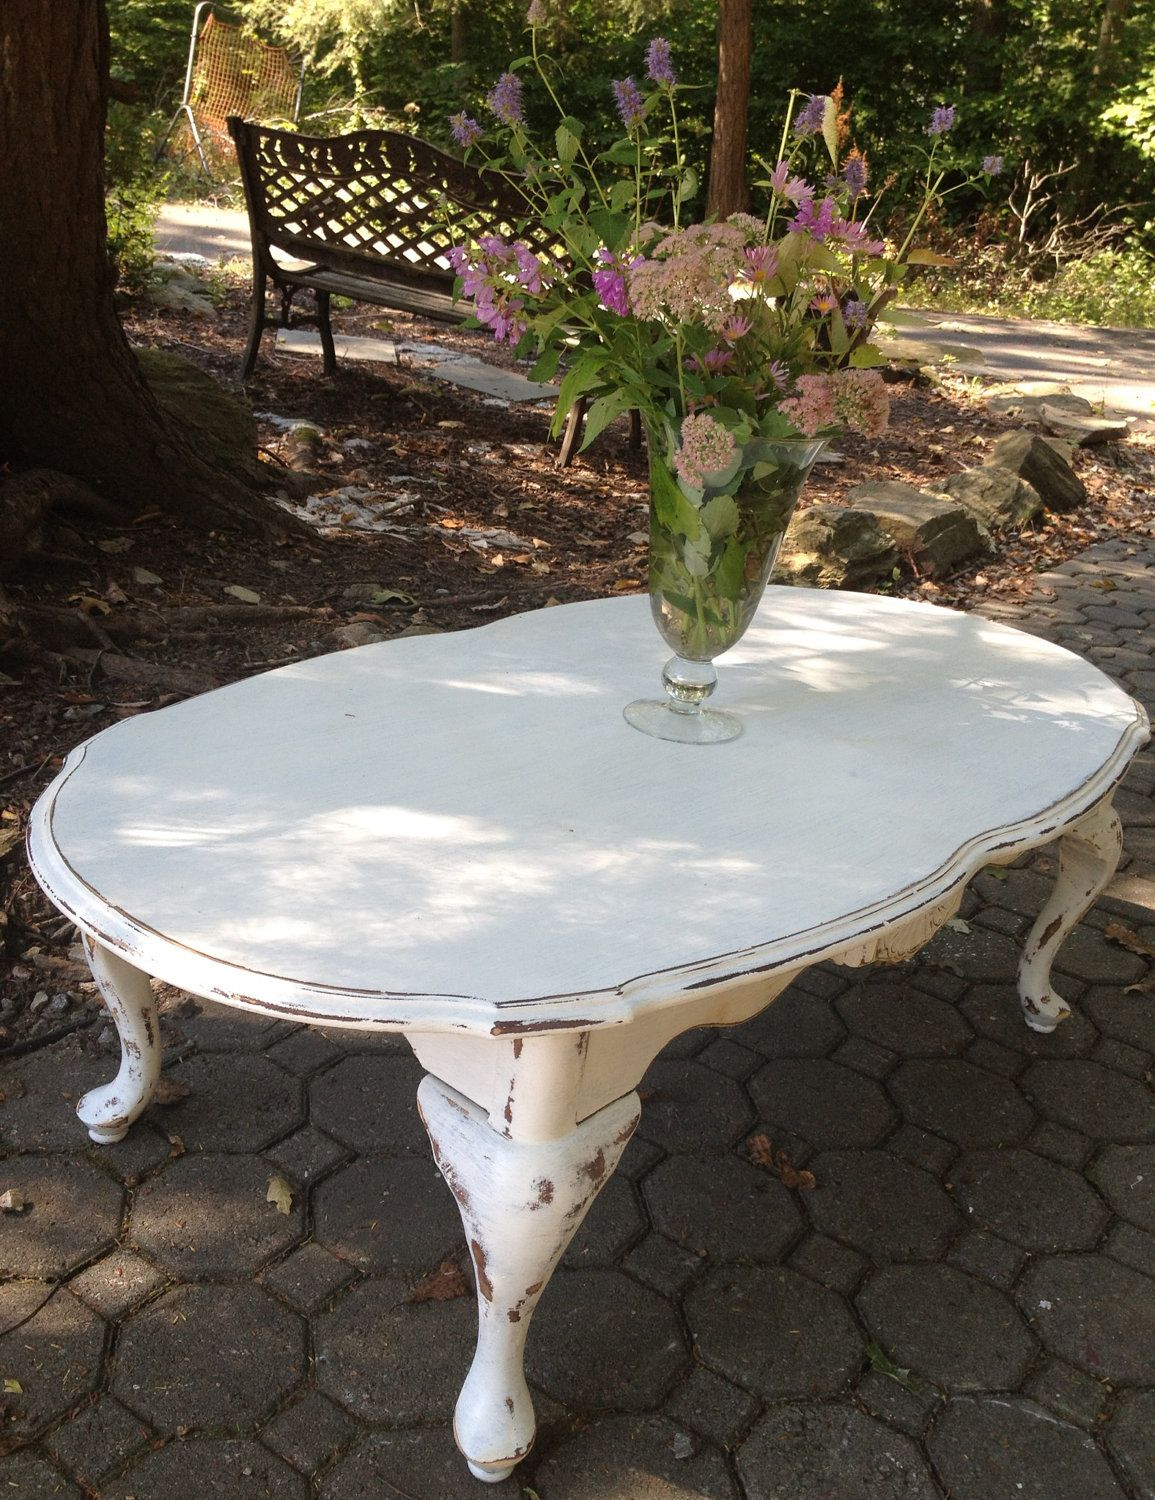 Shabby Chic Vintage Coffee Table Farmhouse Cottage French Country 195 00 Via Etsy Shabby Chic Coffee Table Chic Coffee Table Coffee Table Vintage